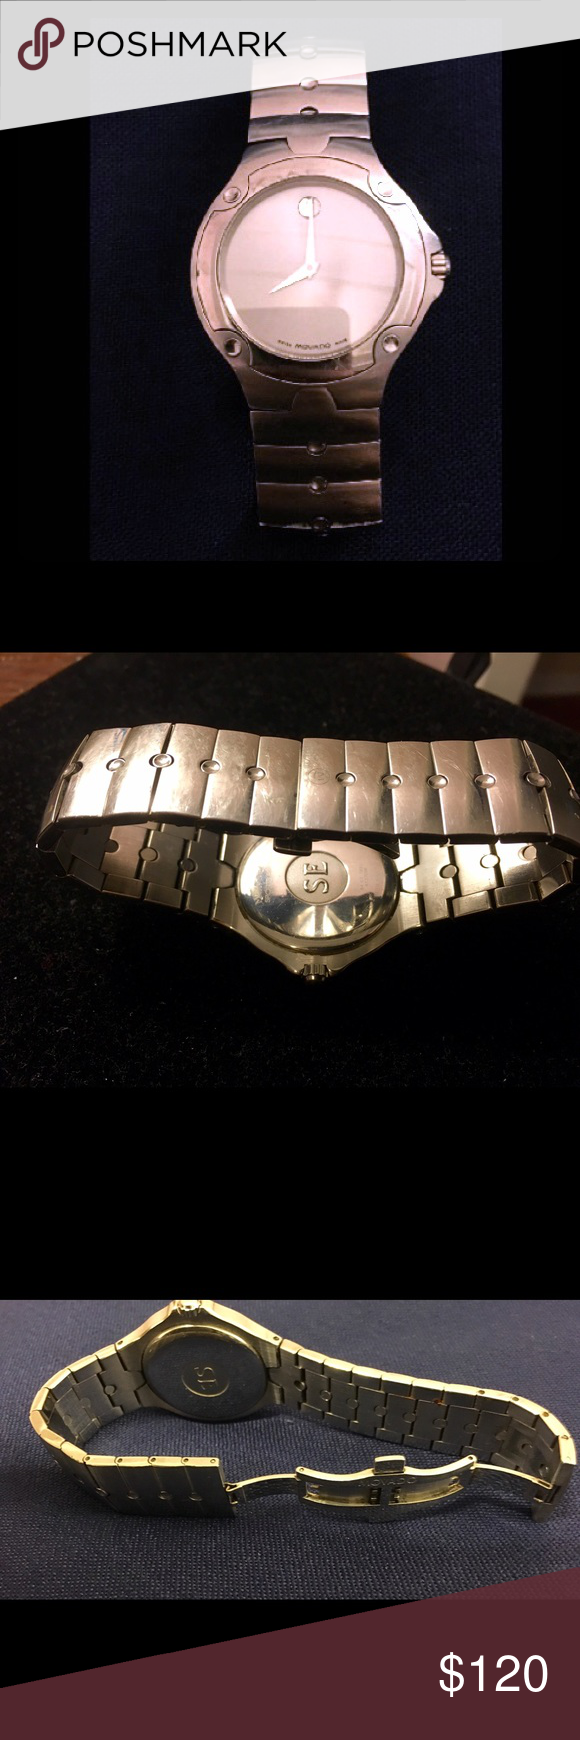 Men's Movado Watch Battery replacement needed. Sports edition, stainless steel, water resistant, sapphire crystal gently used very minor scratches not noticeable. No box. As is Movado Other